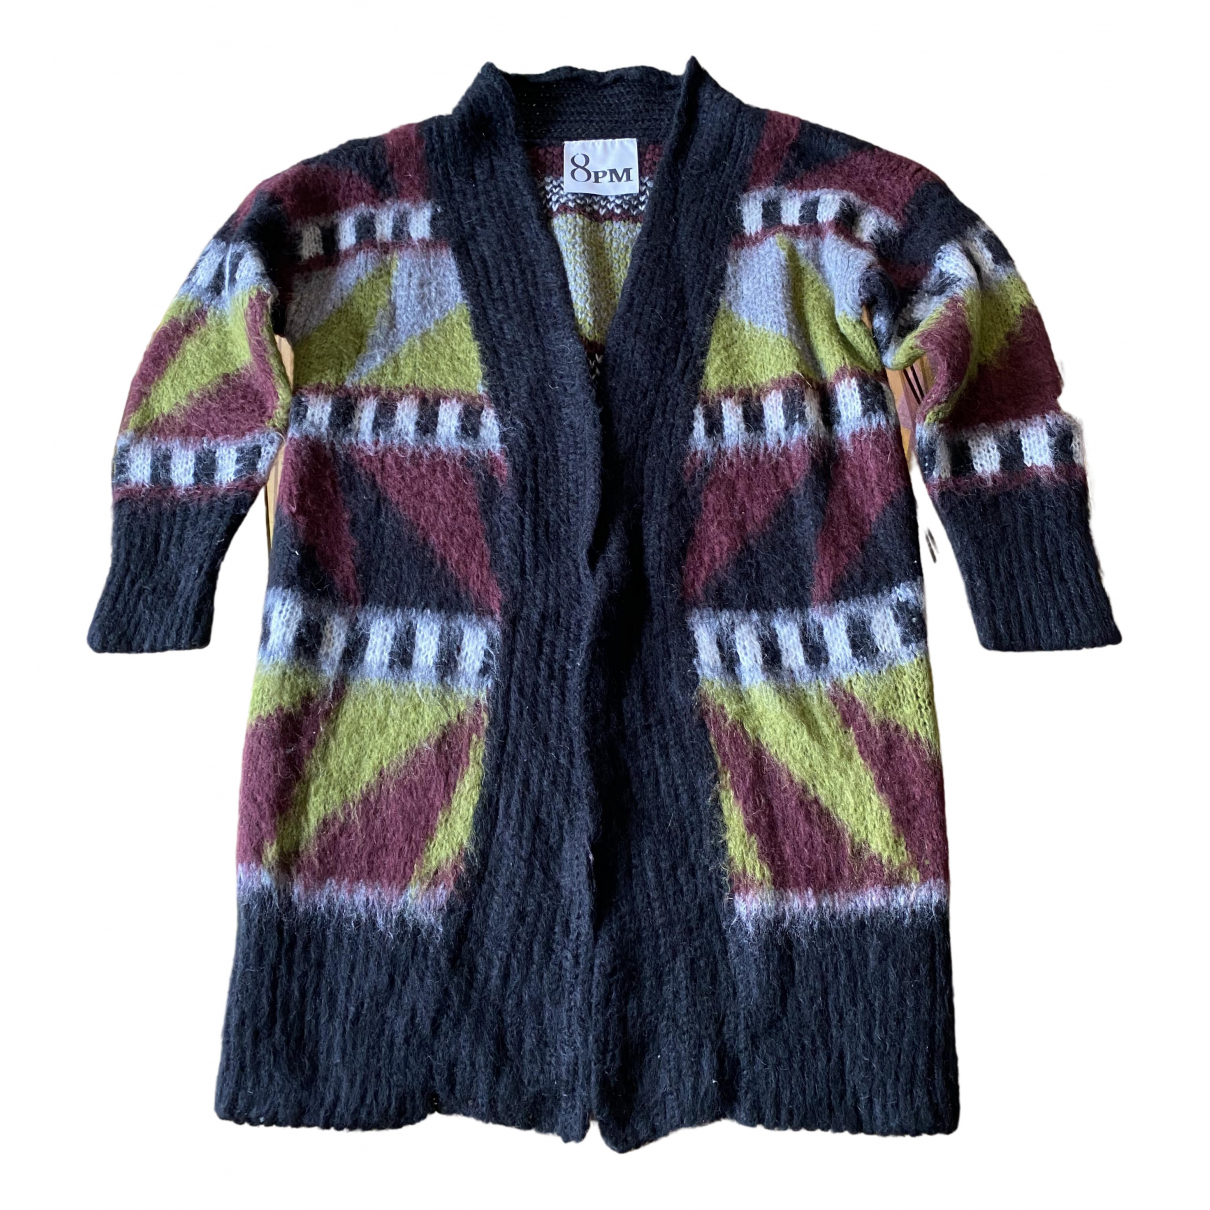 8pm N Multicolour Knitwear for Women S International